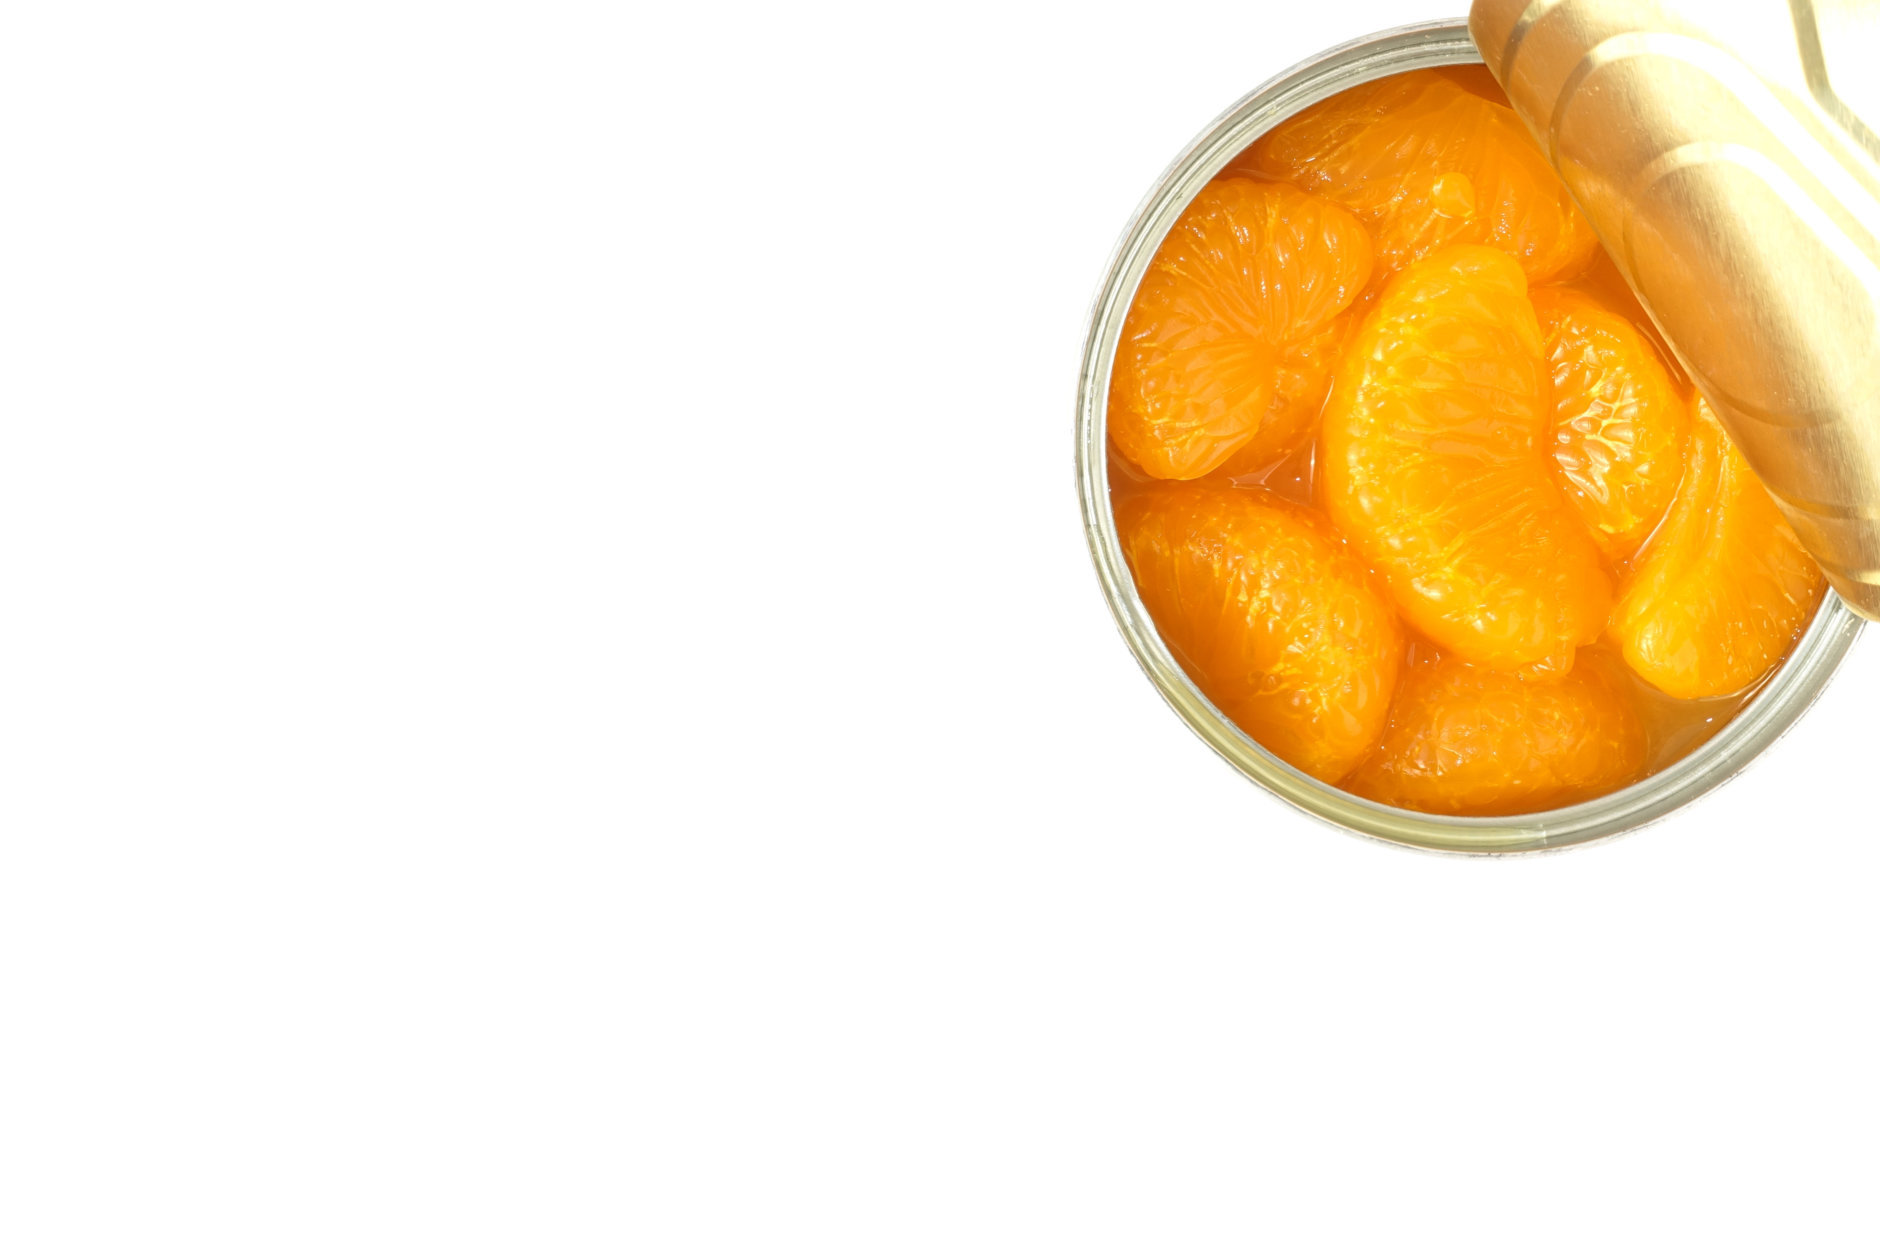 Closeup of an opened can of mandarin oranges on white background with copy space.